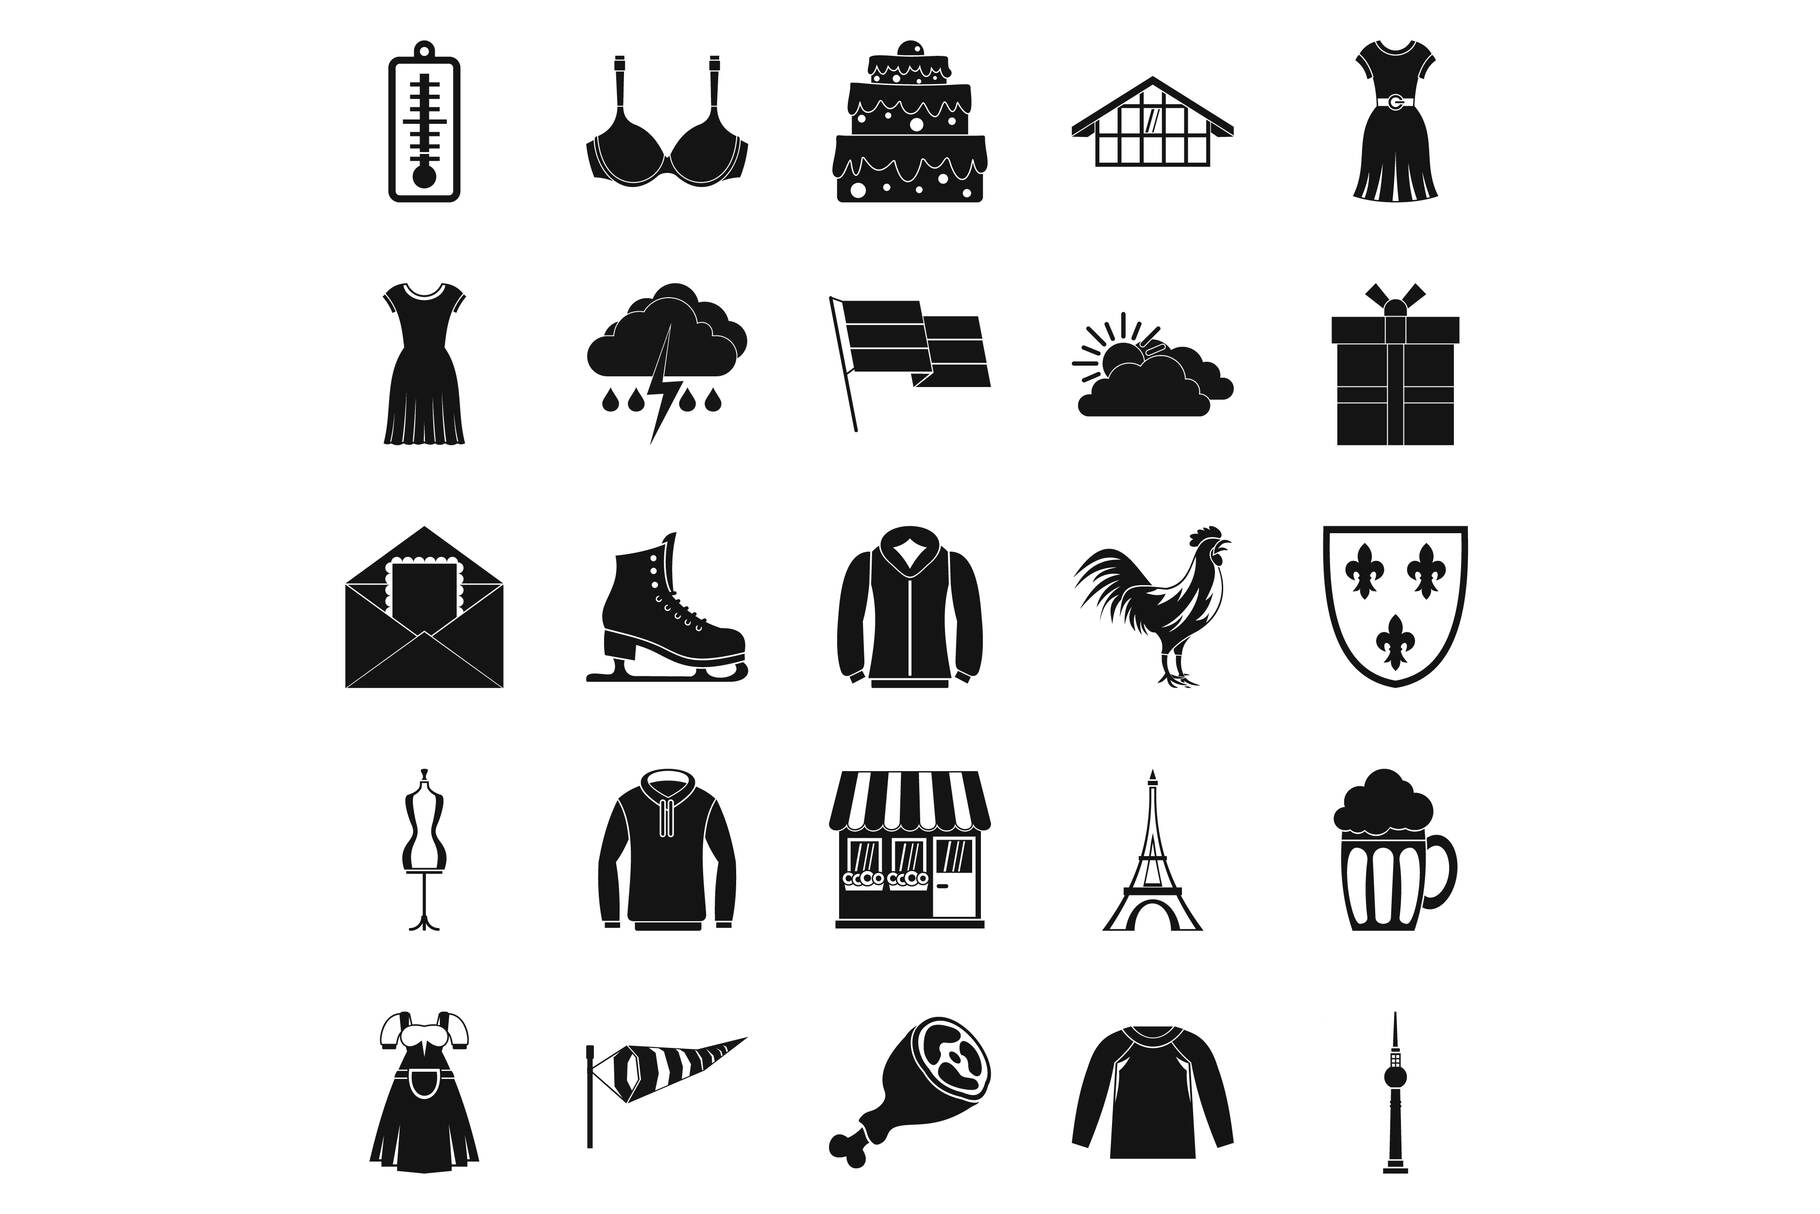 Lightweight clothing icons set, simple style example image 1